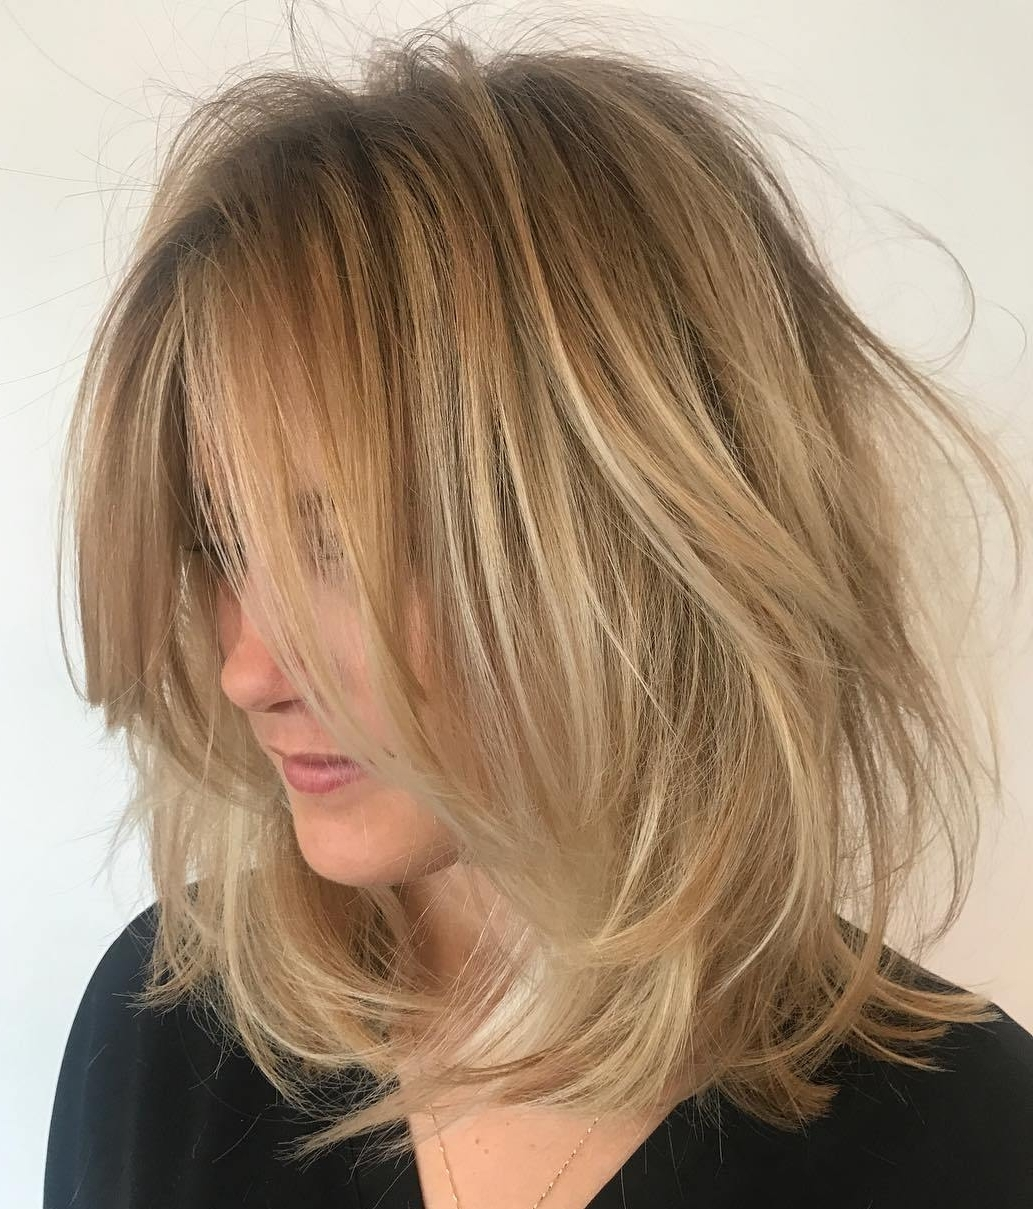 70 Devastatingly Cool Haircuts For Thin Hair Regarding Recent Volumized Caramel Blonde Lob Hairstyles (View 5 of 20)